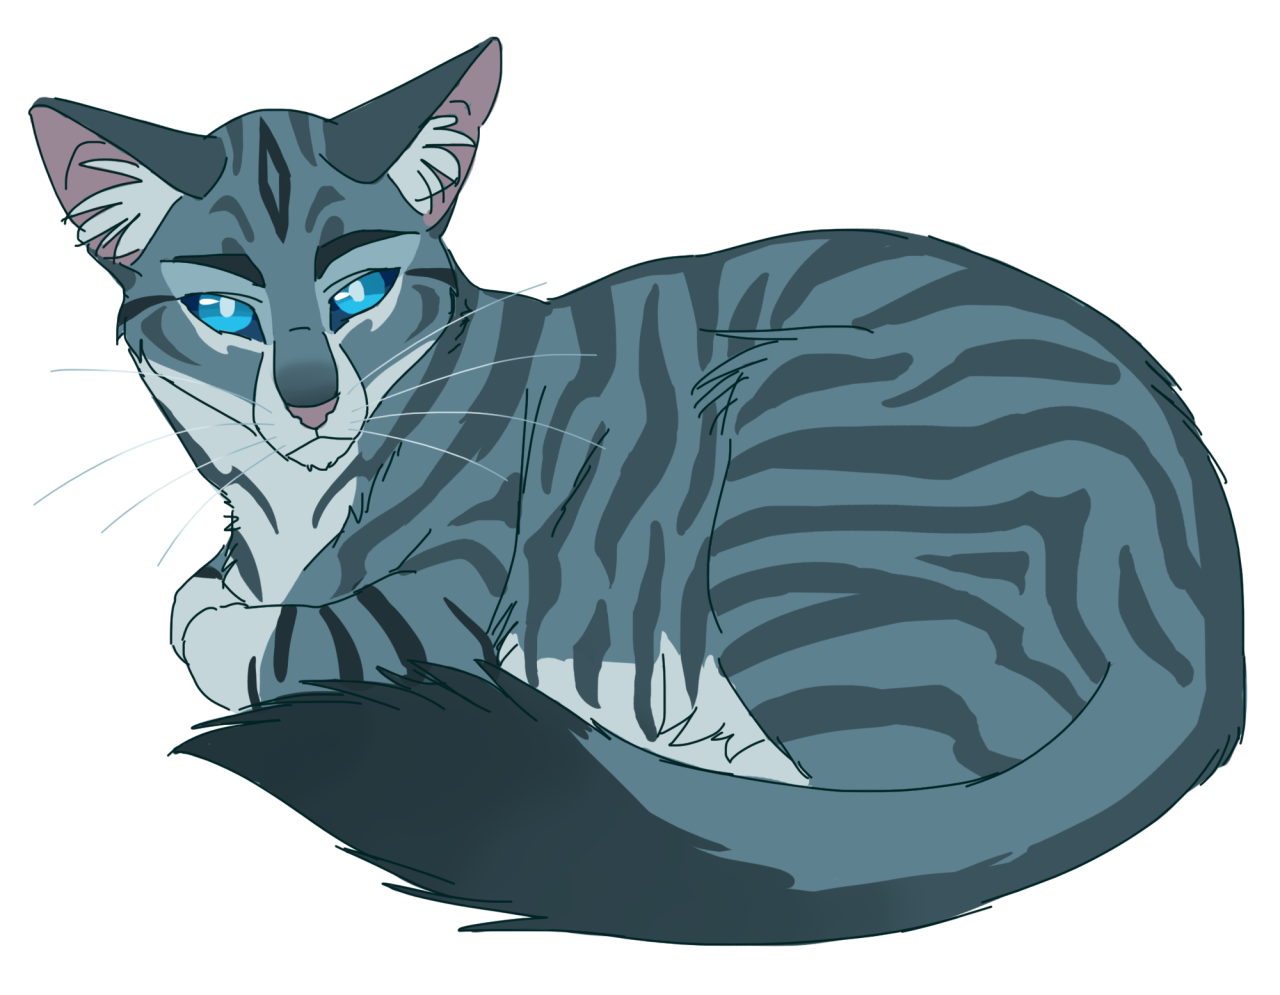 100 Warrior Cats Challenge 14 Jayfeather (Feel free to